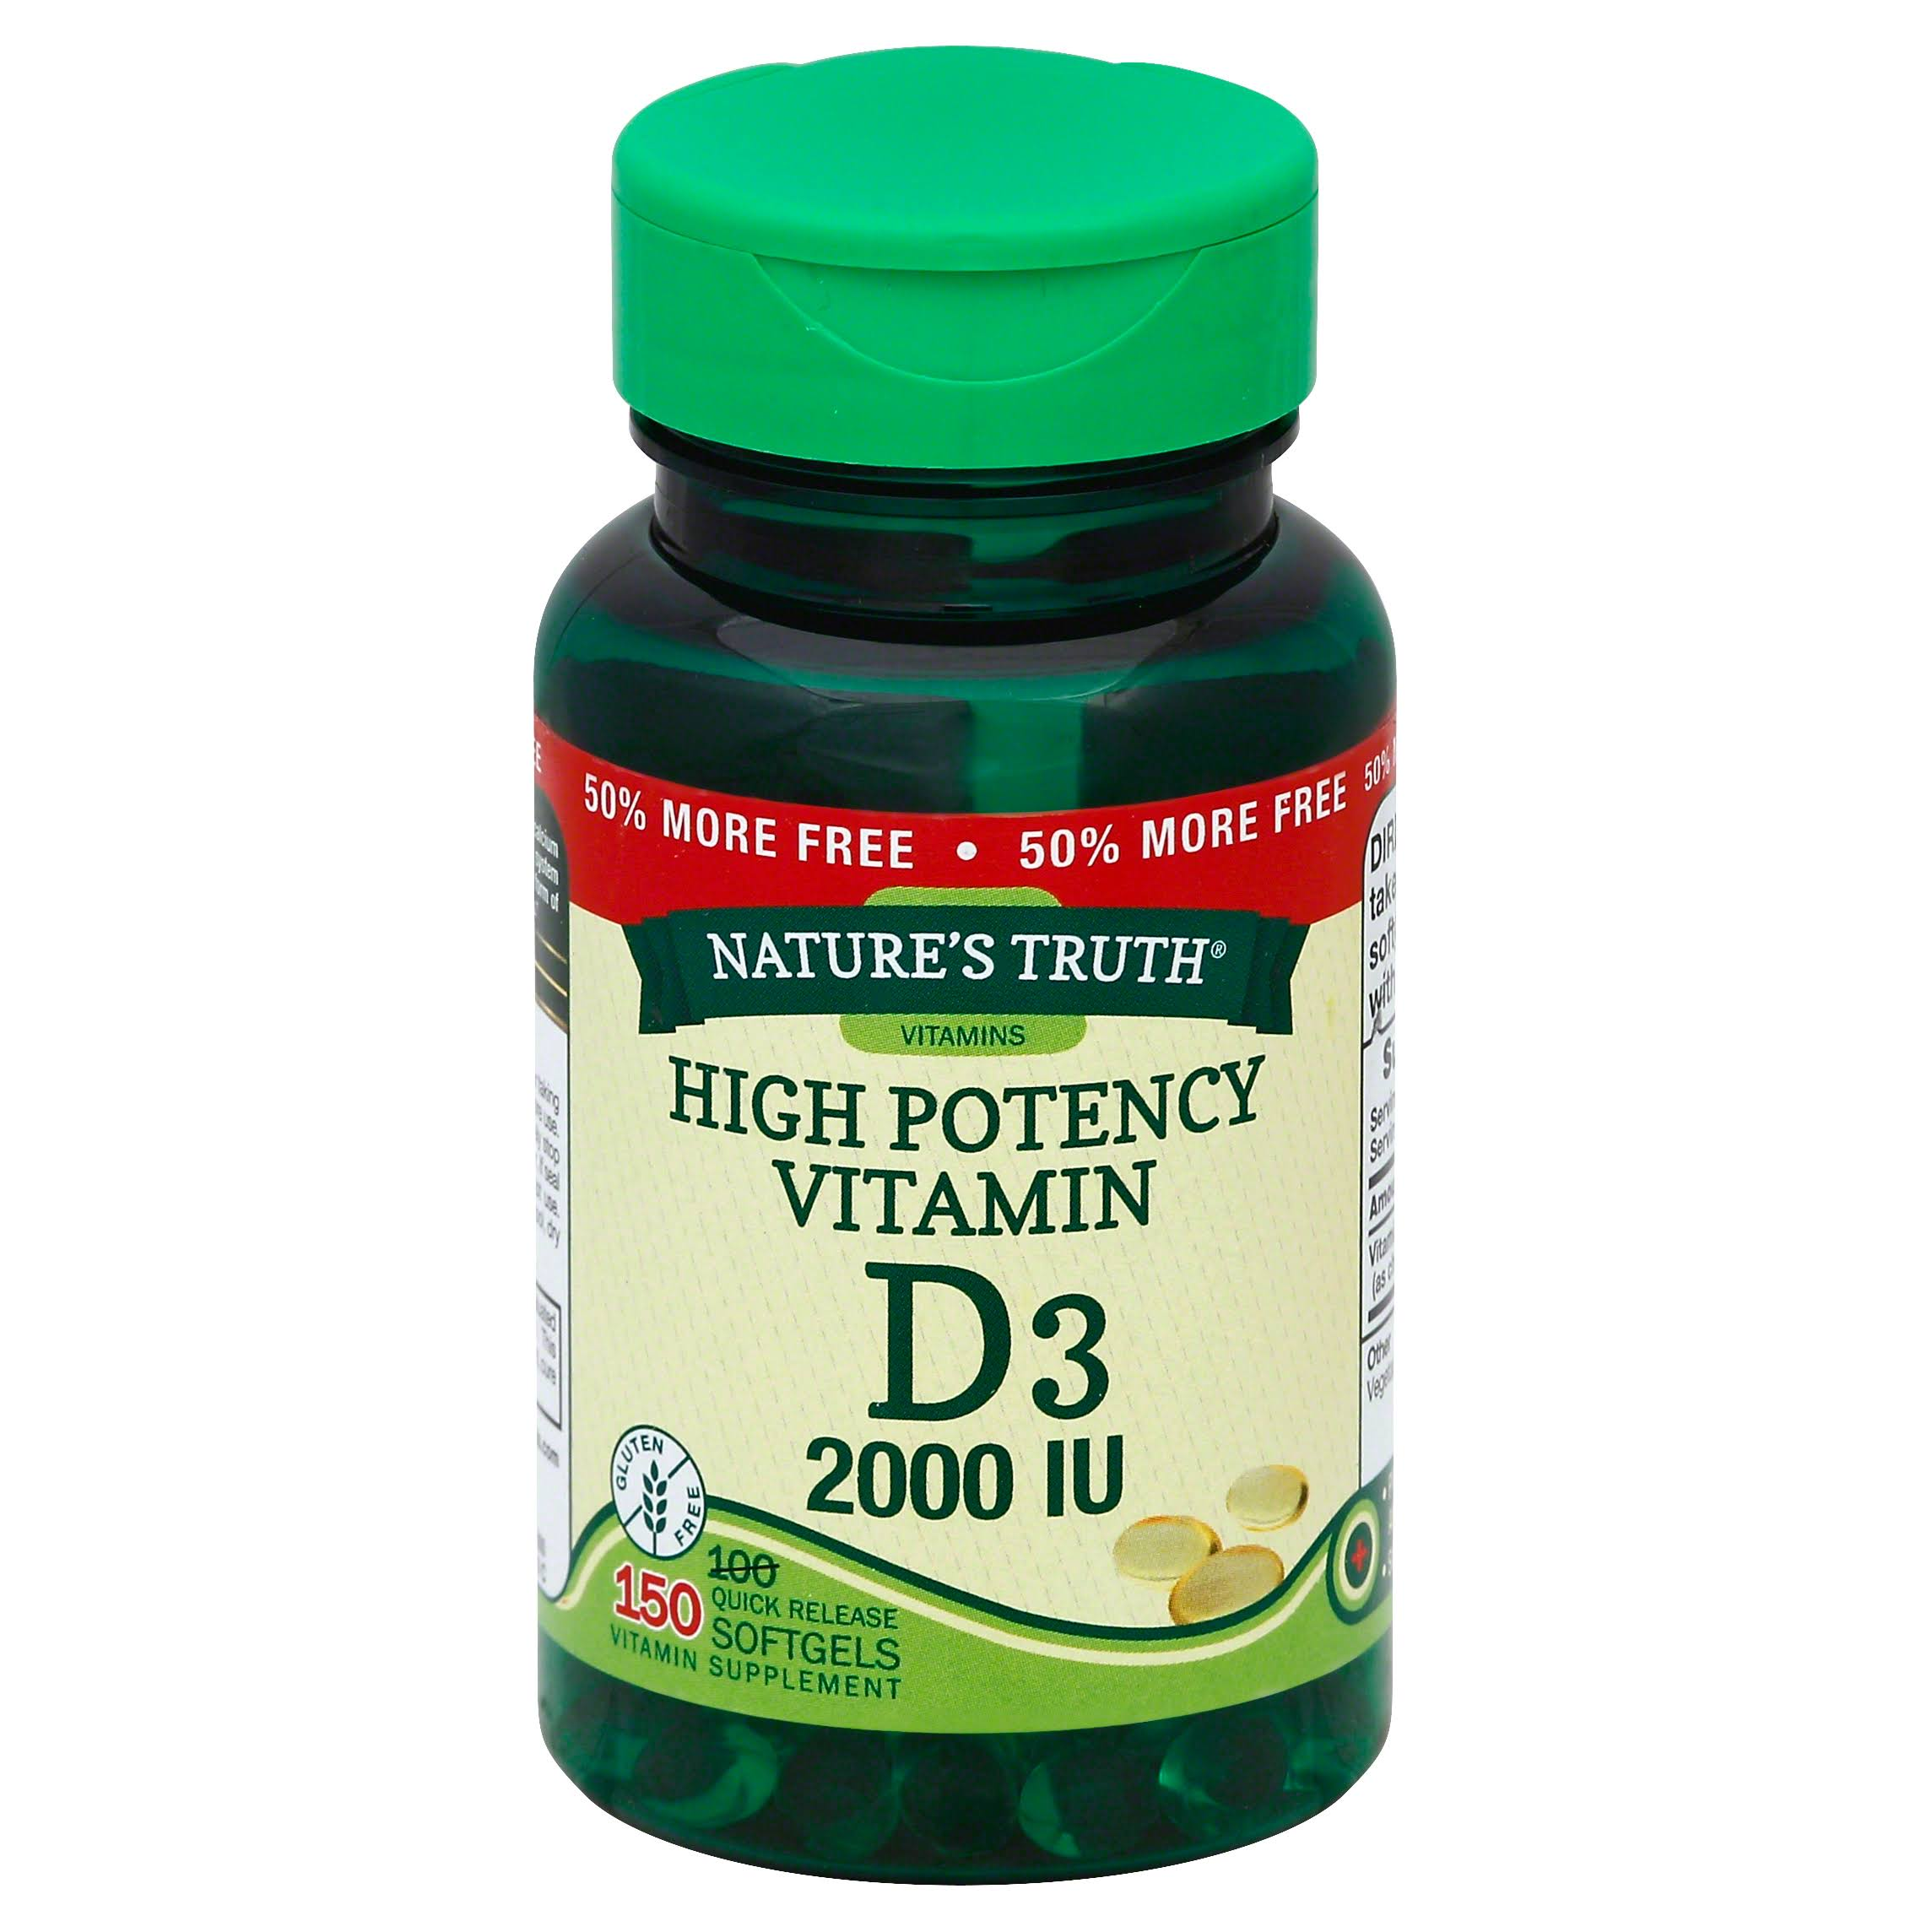 Nature's Truth High Potency Vitamin D3 Softgels - 150ct